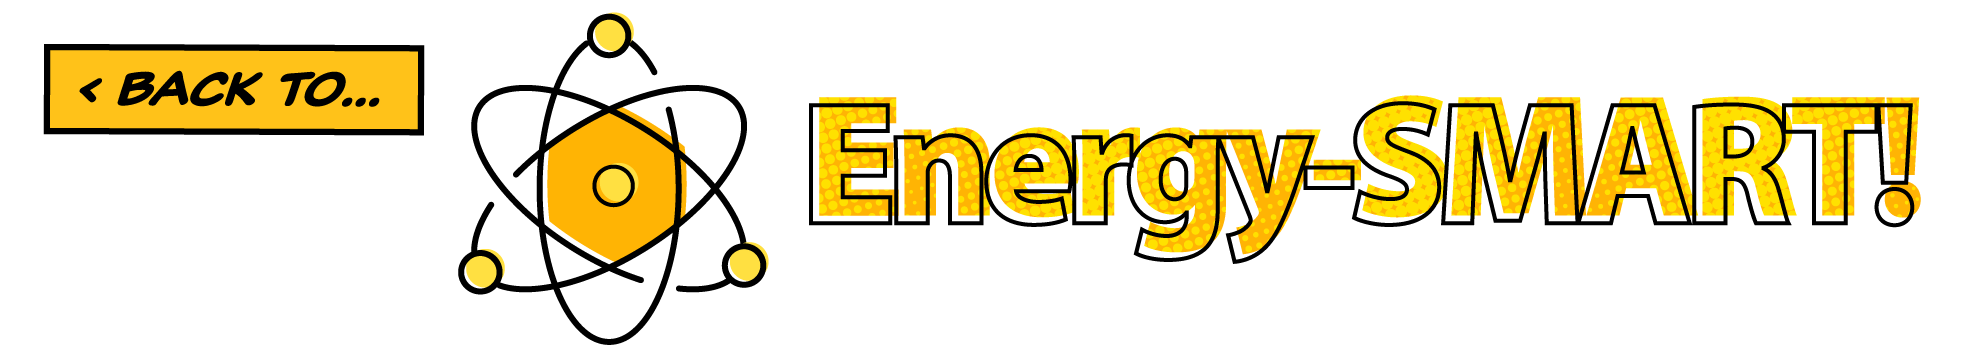 Back to… Energy-SMART!